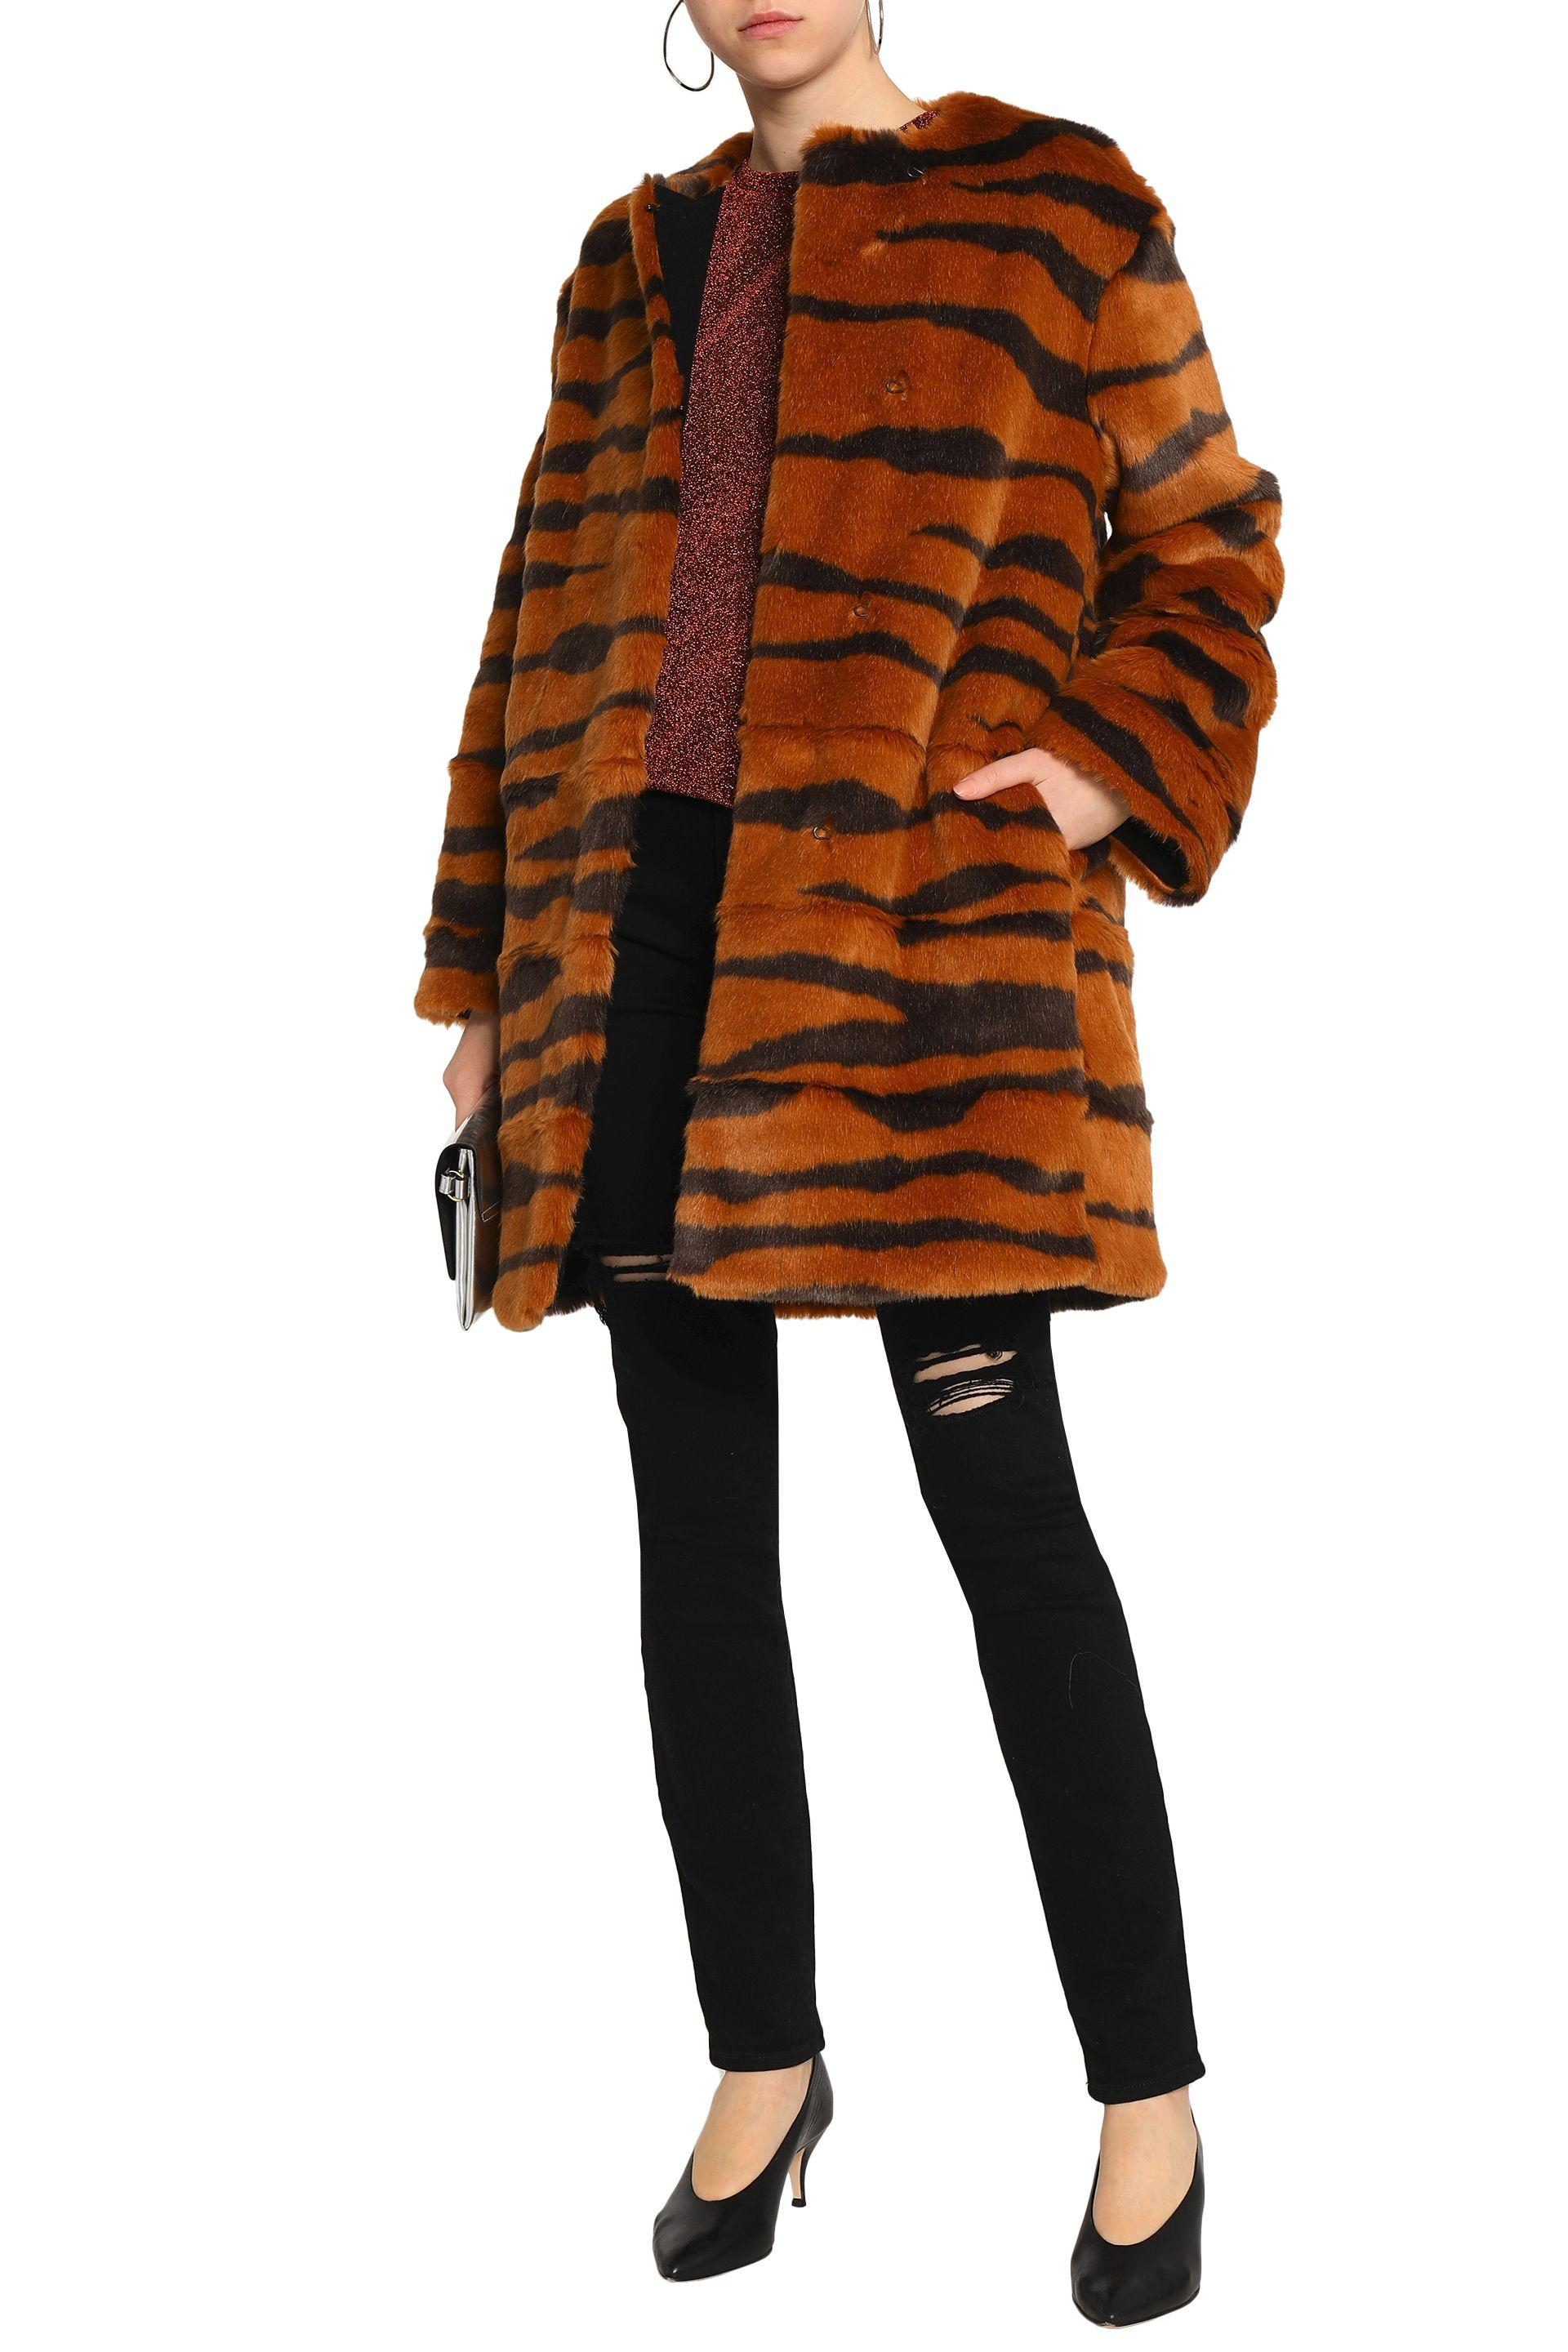 ddfc953bba93 MSGM Woman Printed Faux Fur Coat Animal Print in Brown - Lyst